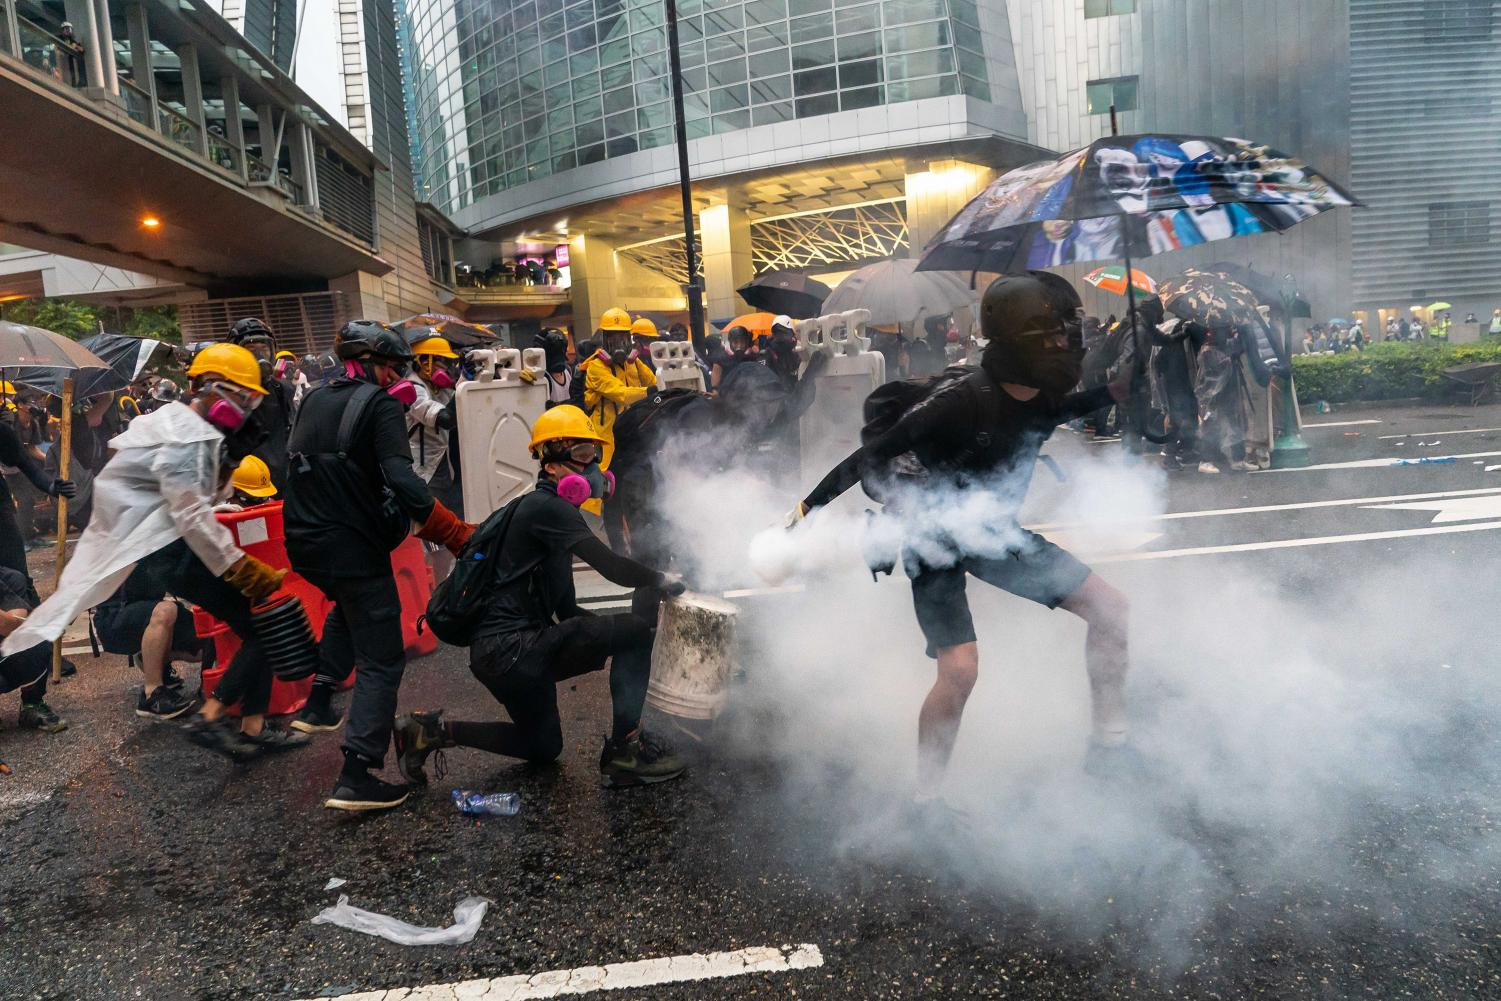 Protesters clash with police after a rally in Tsuen Wan on August 25, 2019 in Hong Kong, China. (Billy H.C. Kwok/Getty Images/TNS)